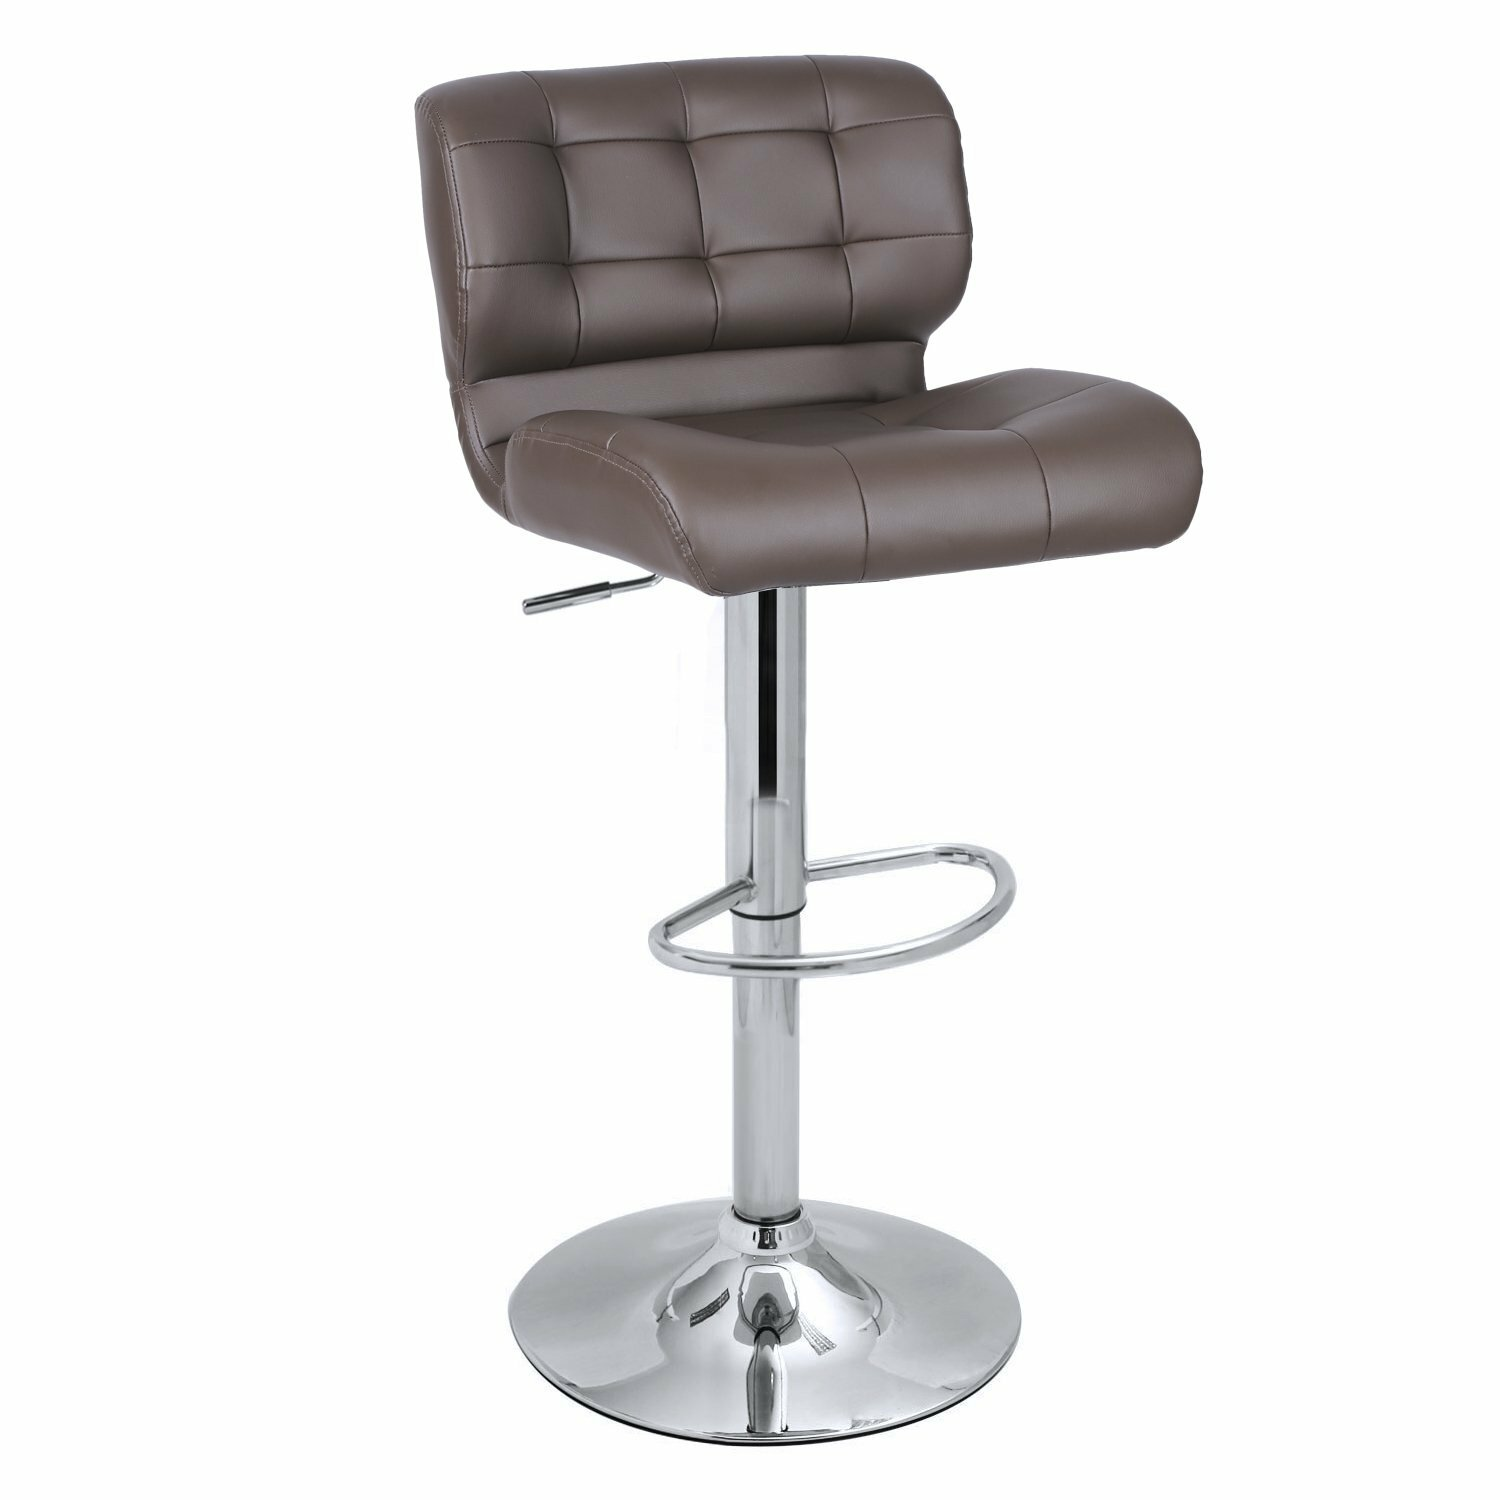 AdecoTrading Adjustable Height Swivel Bar Stool amp Reviews  : Adeco Trading Adjustable Height Swivel Bar Stool from www.wayfair.ca size 1500 x 1500 jpeg 74kB